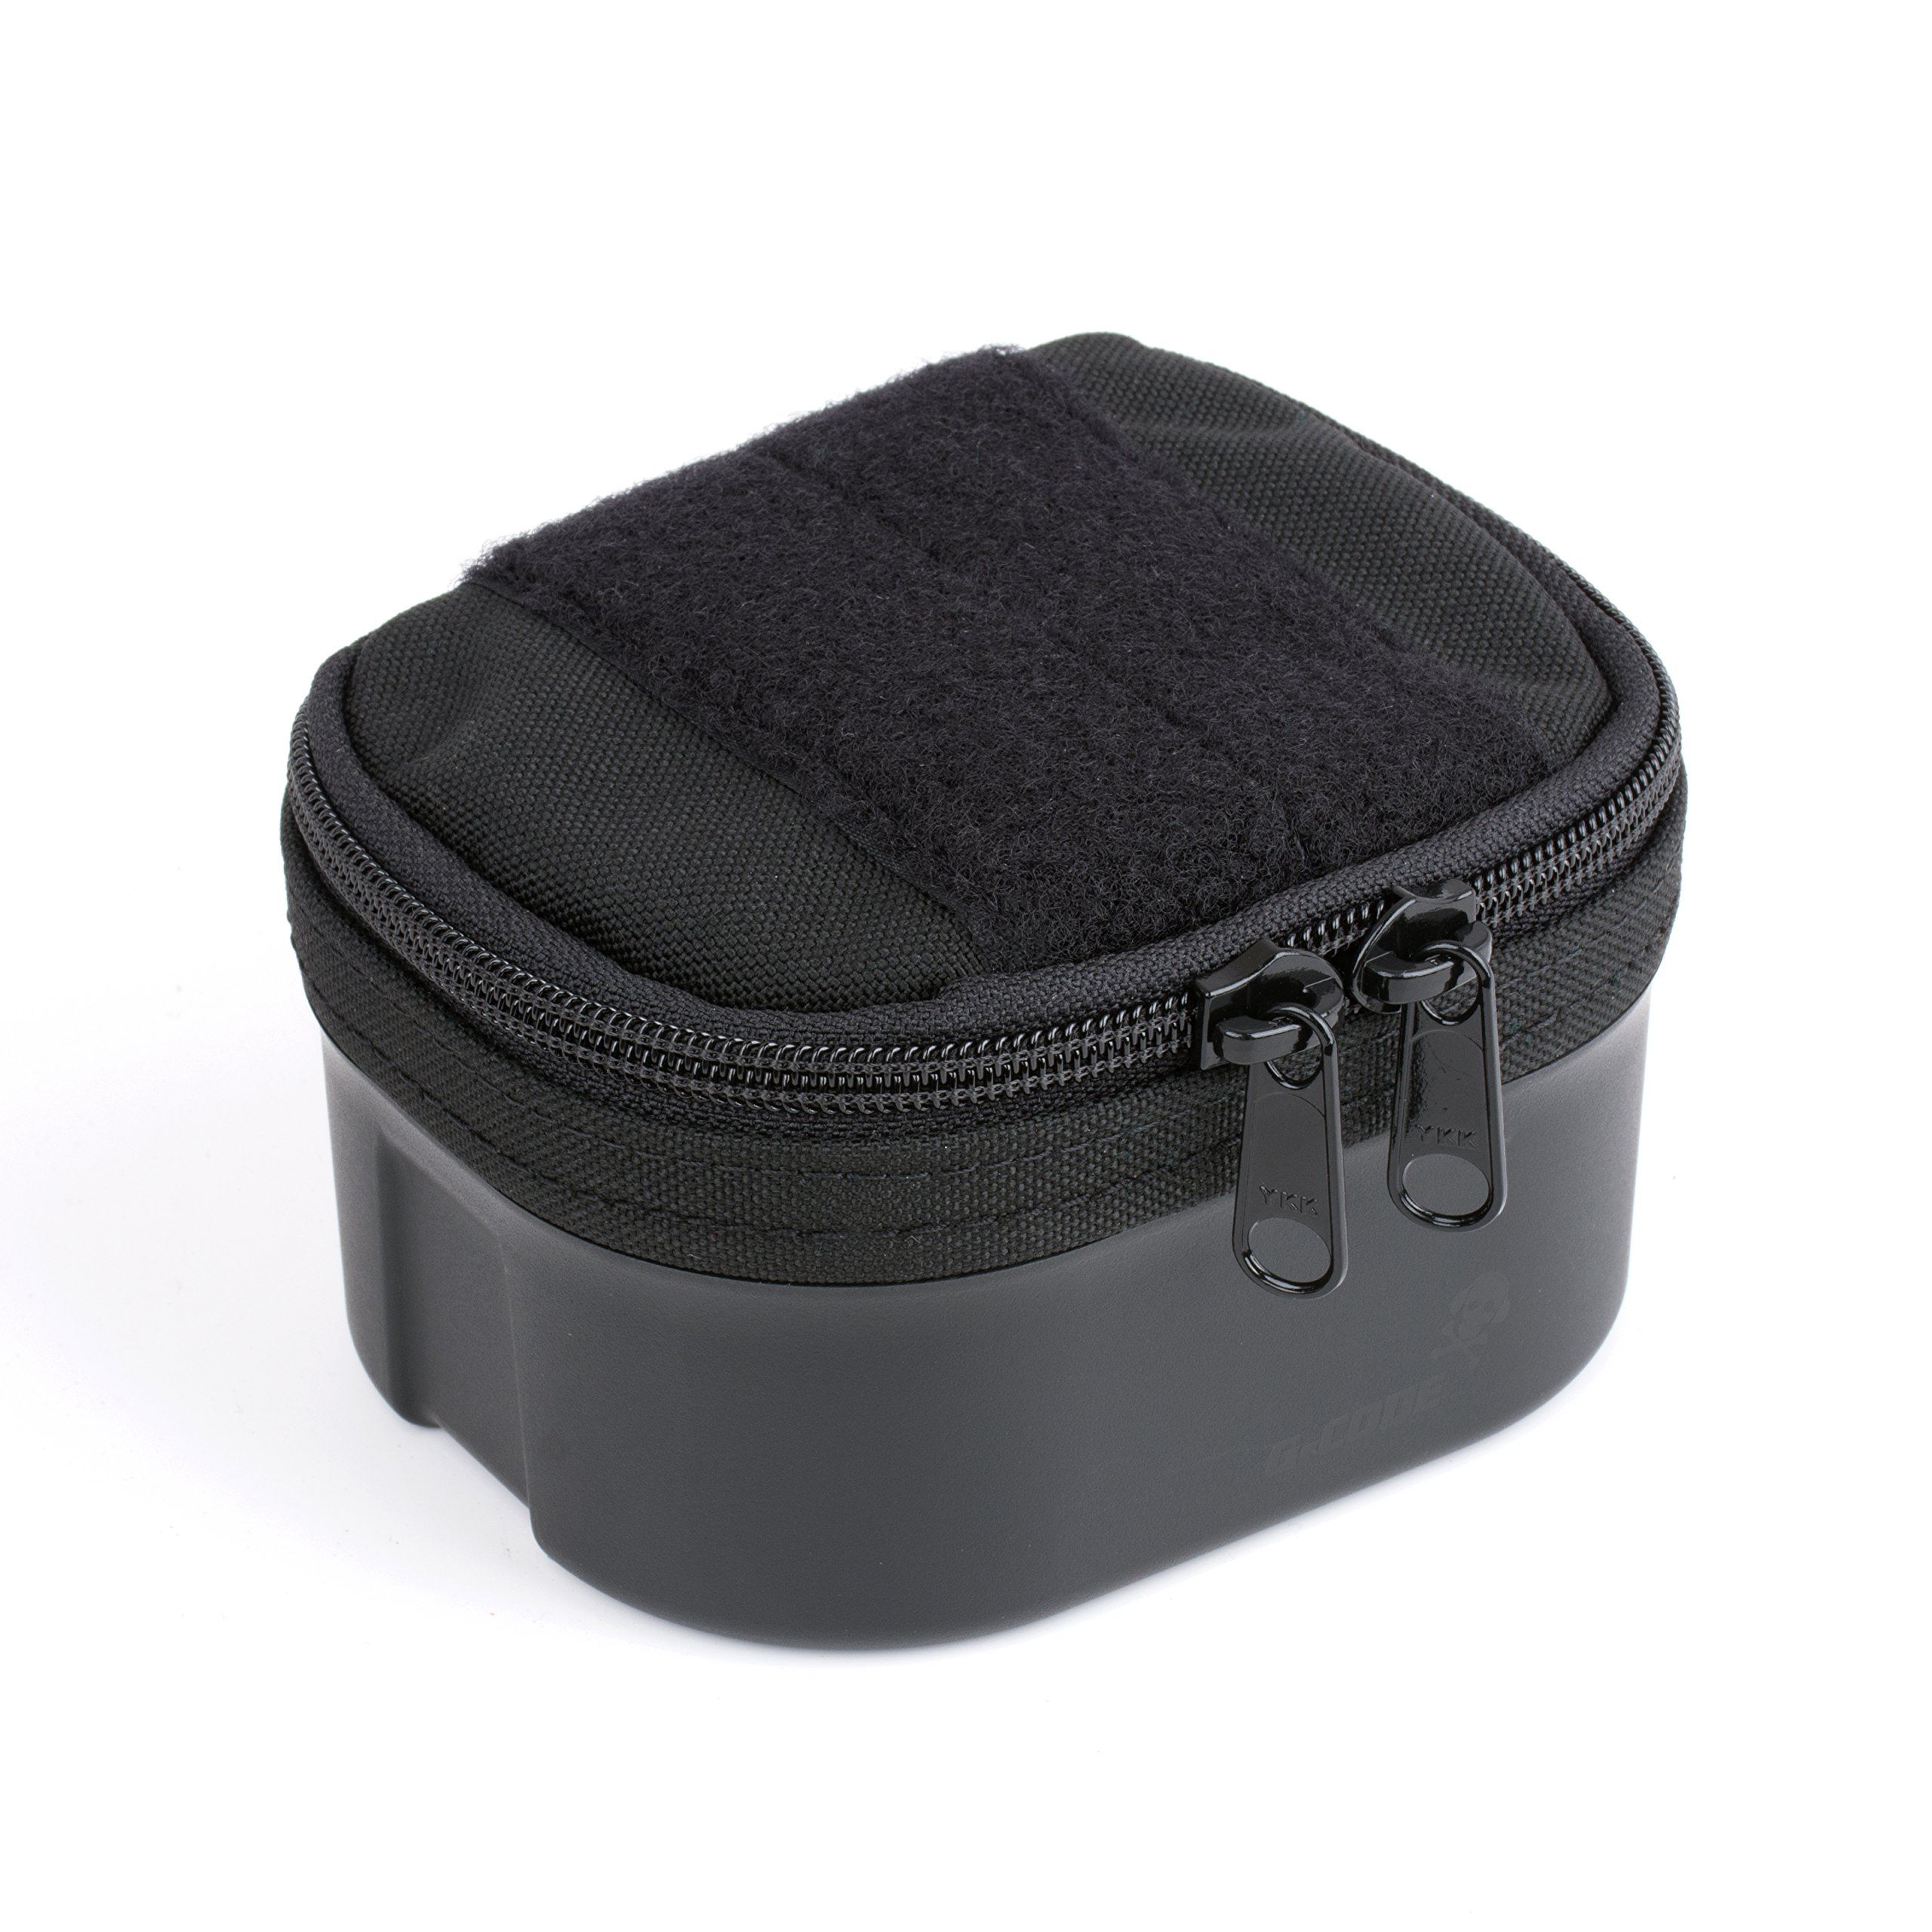 G-CODE Bang Box -Ammunition transport made simple! 100% Made in USA (black on black)